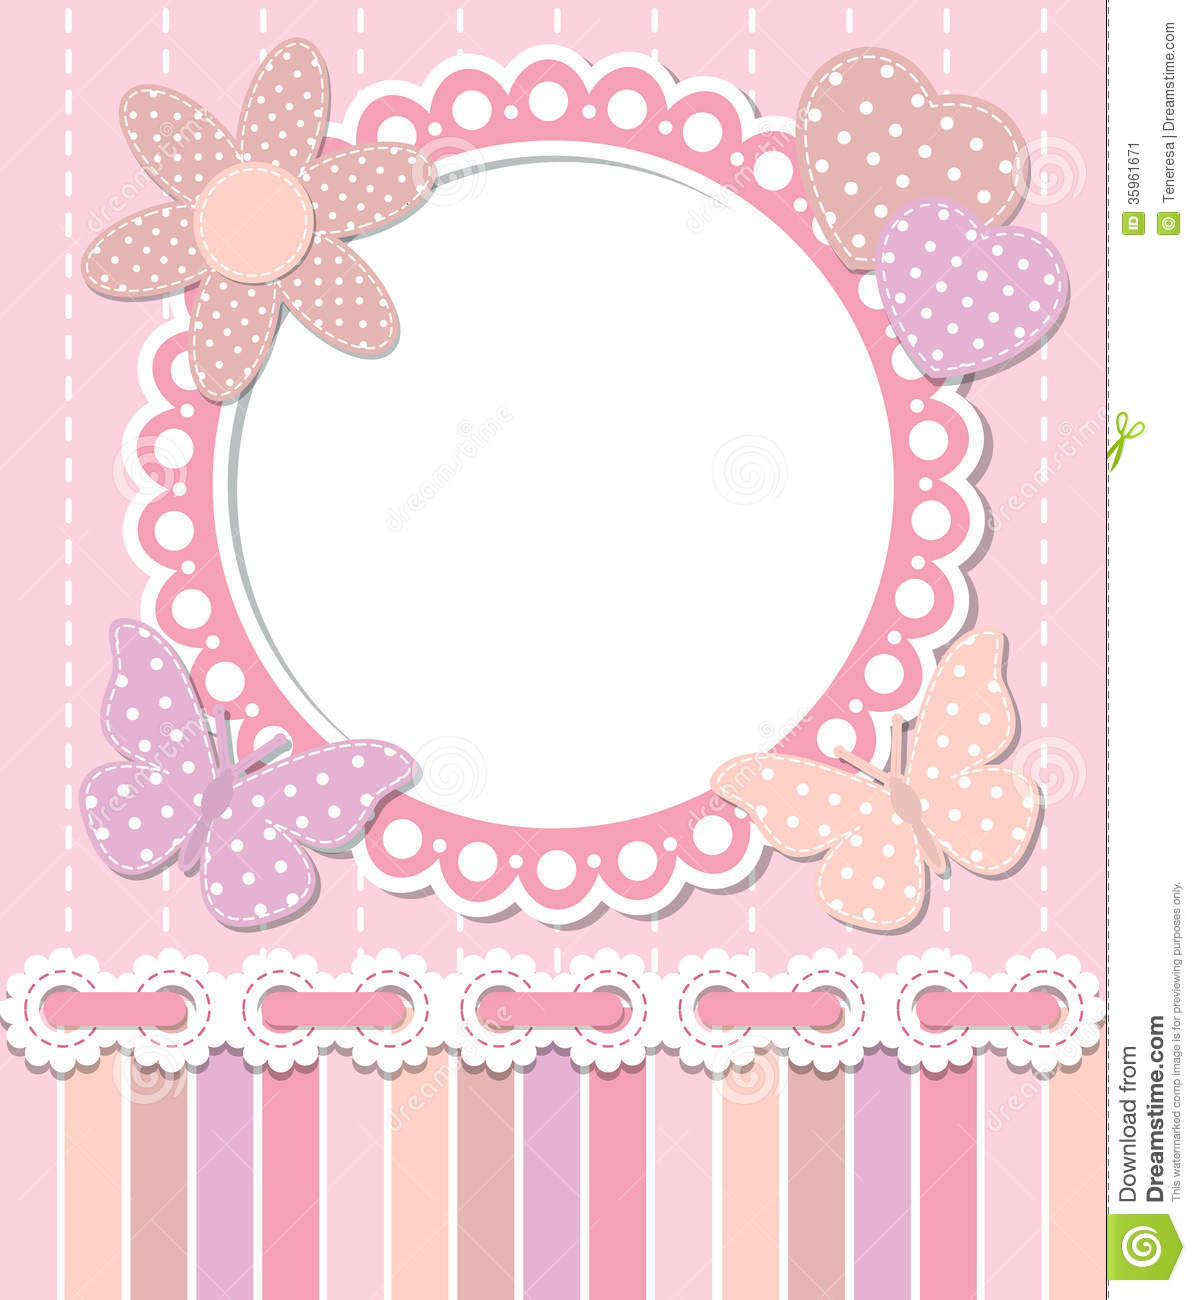 Cute Bordered Pastel Flower Wallpaper Romantic Pink Frame Stock Vector Illustration Of Abstract